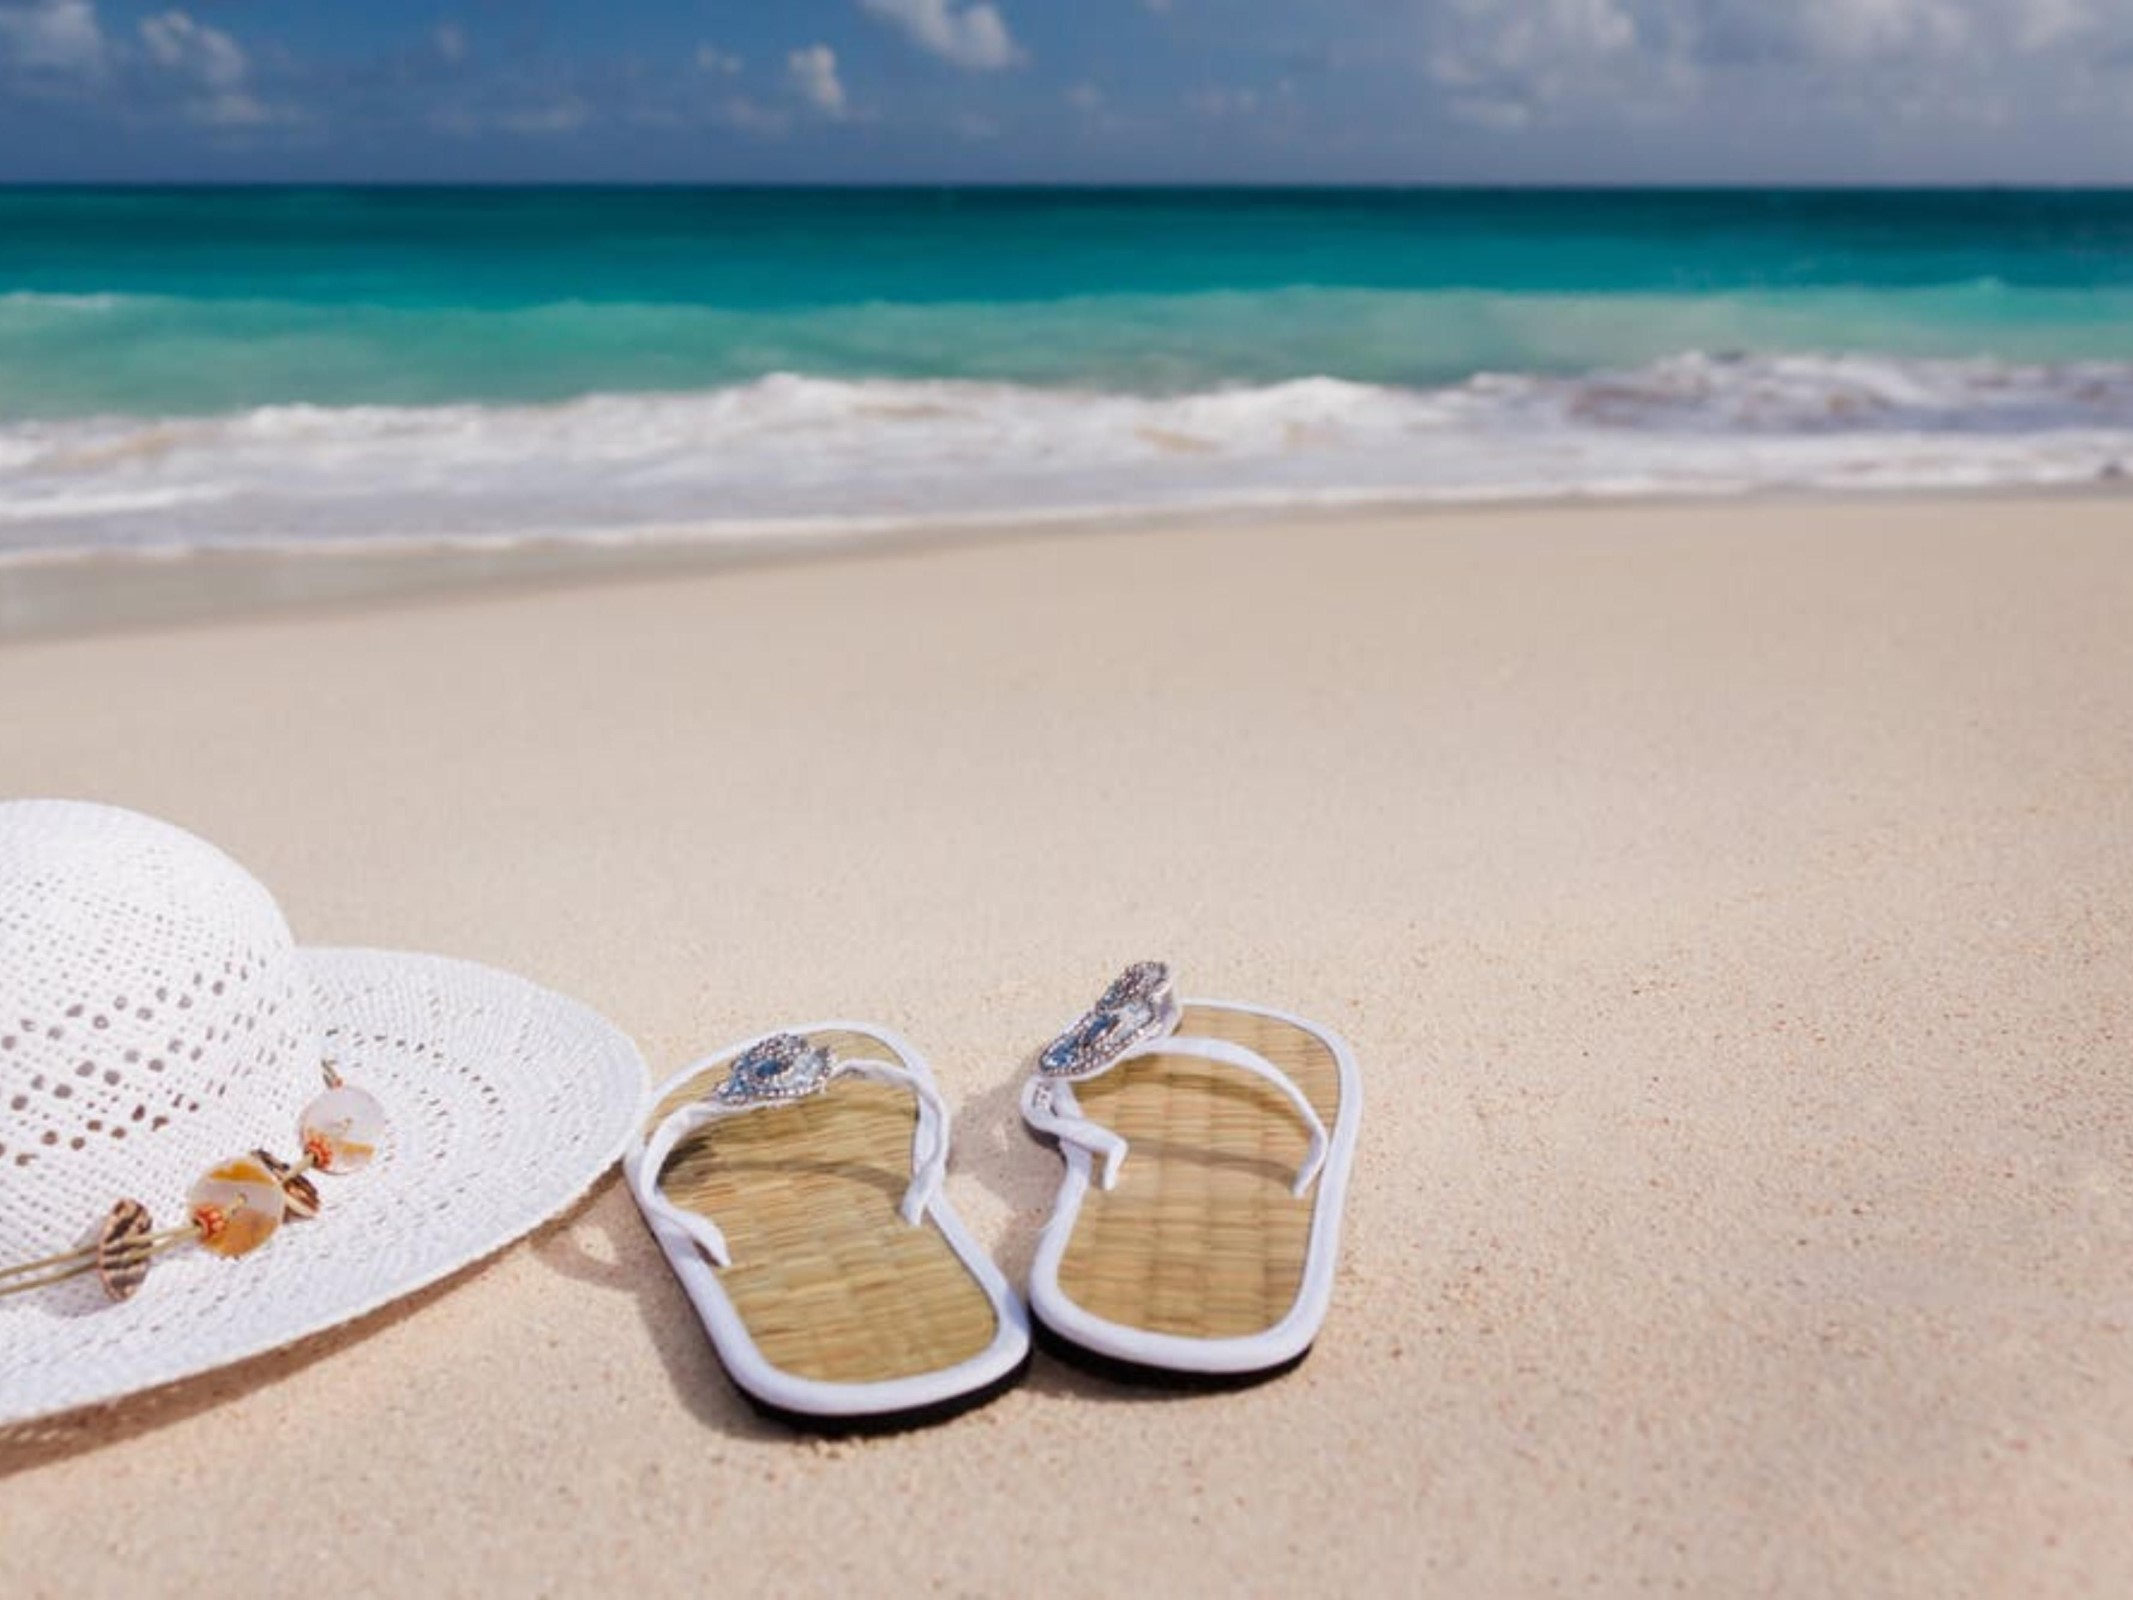 Sandals and sun hat on a sandy beach